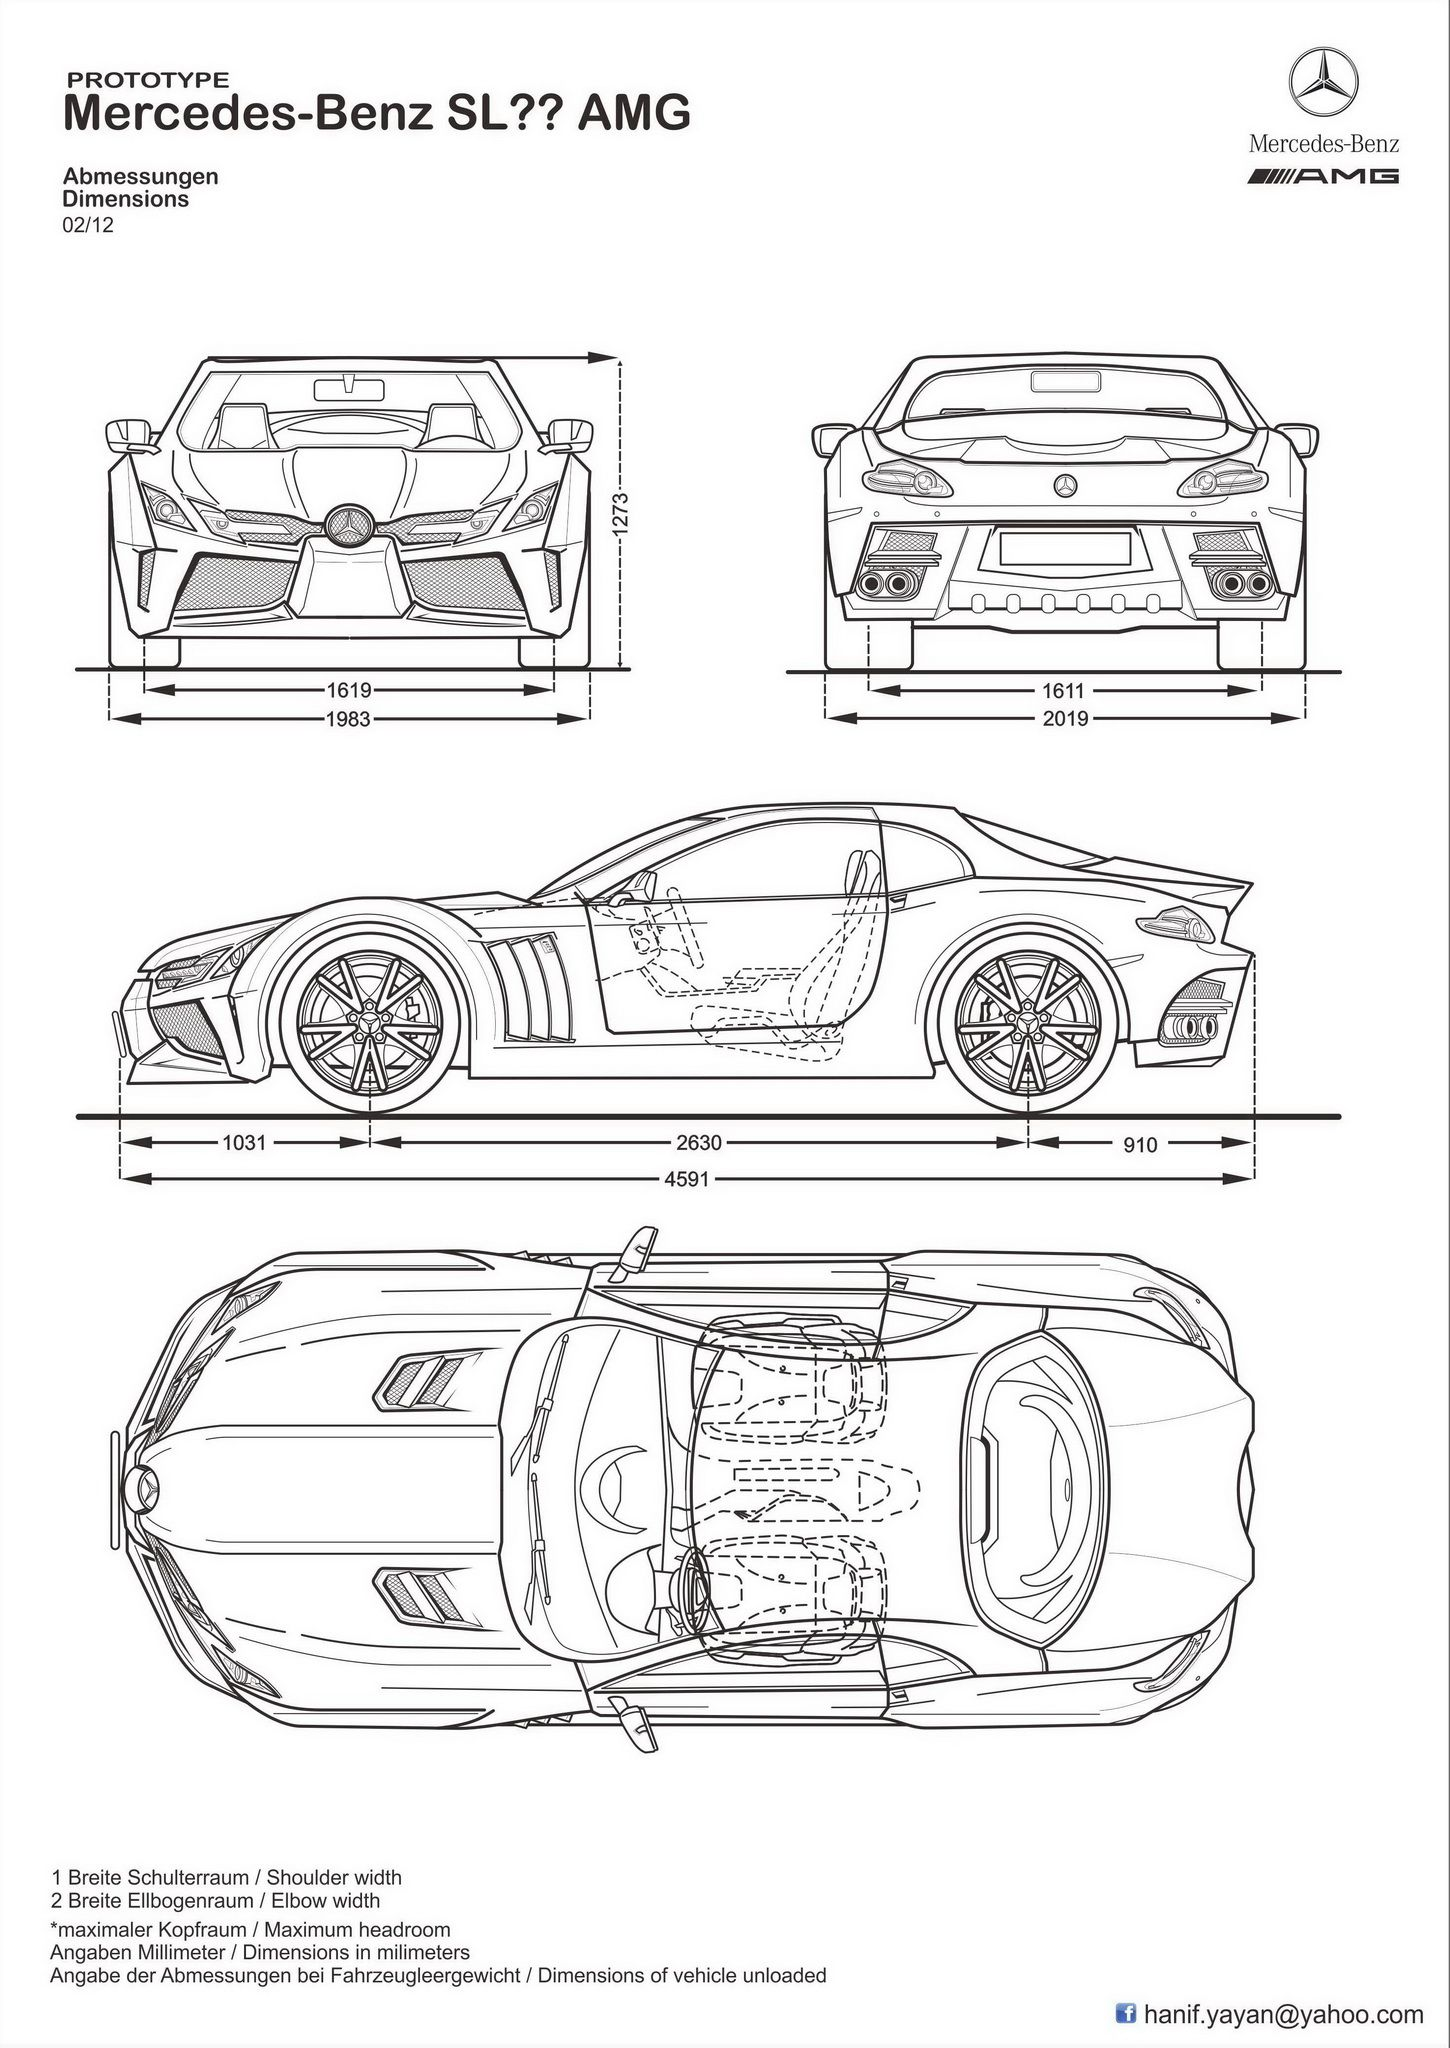 Front View Old Gto Car Drawing